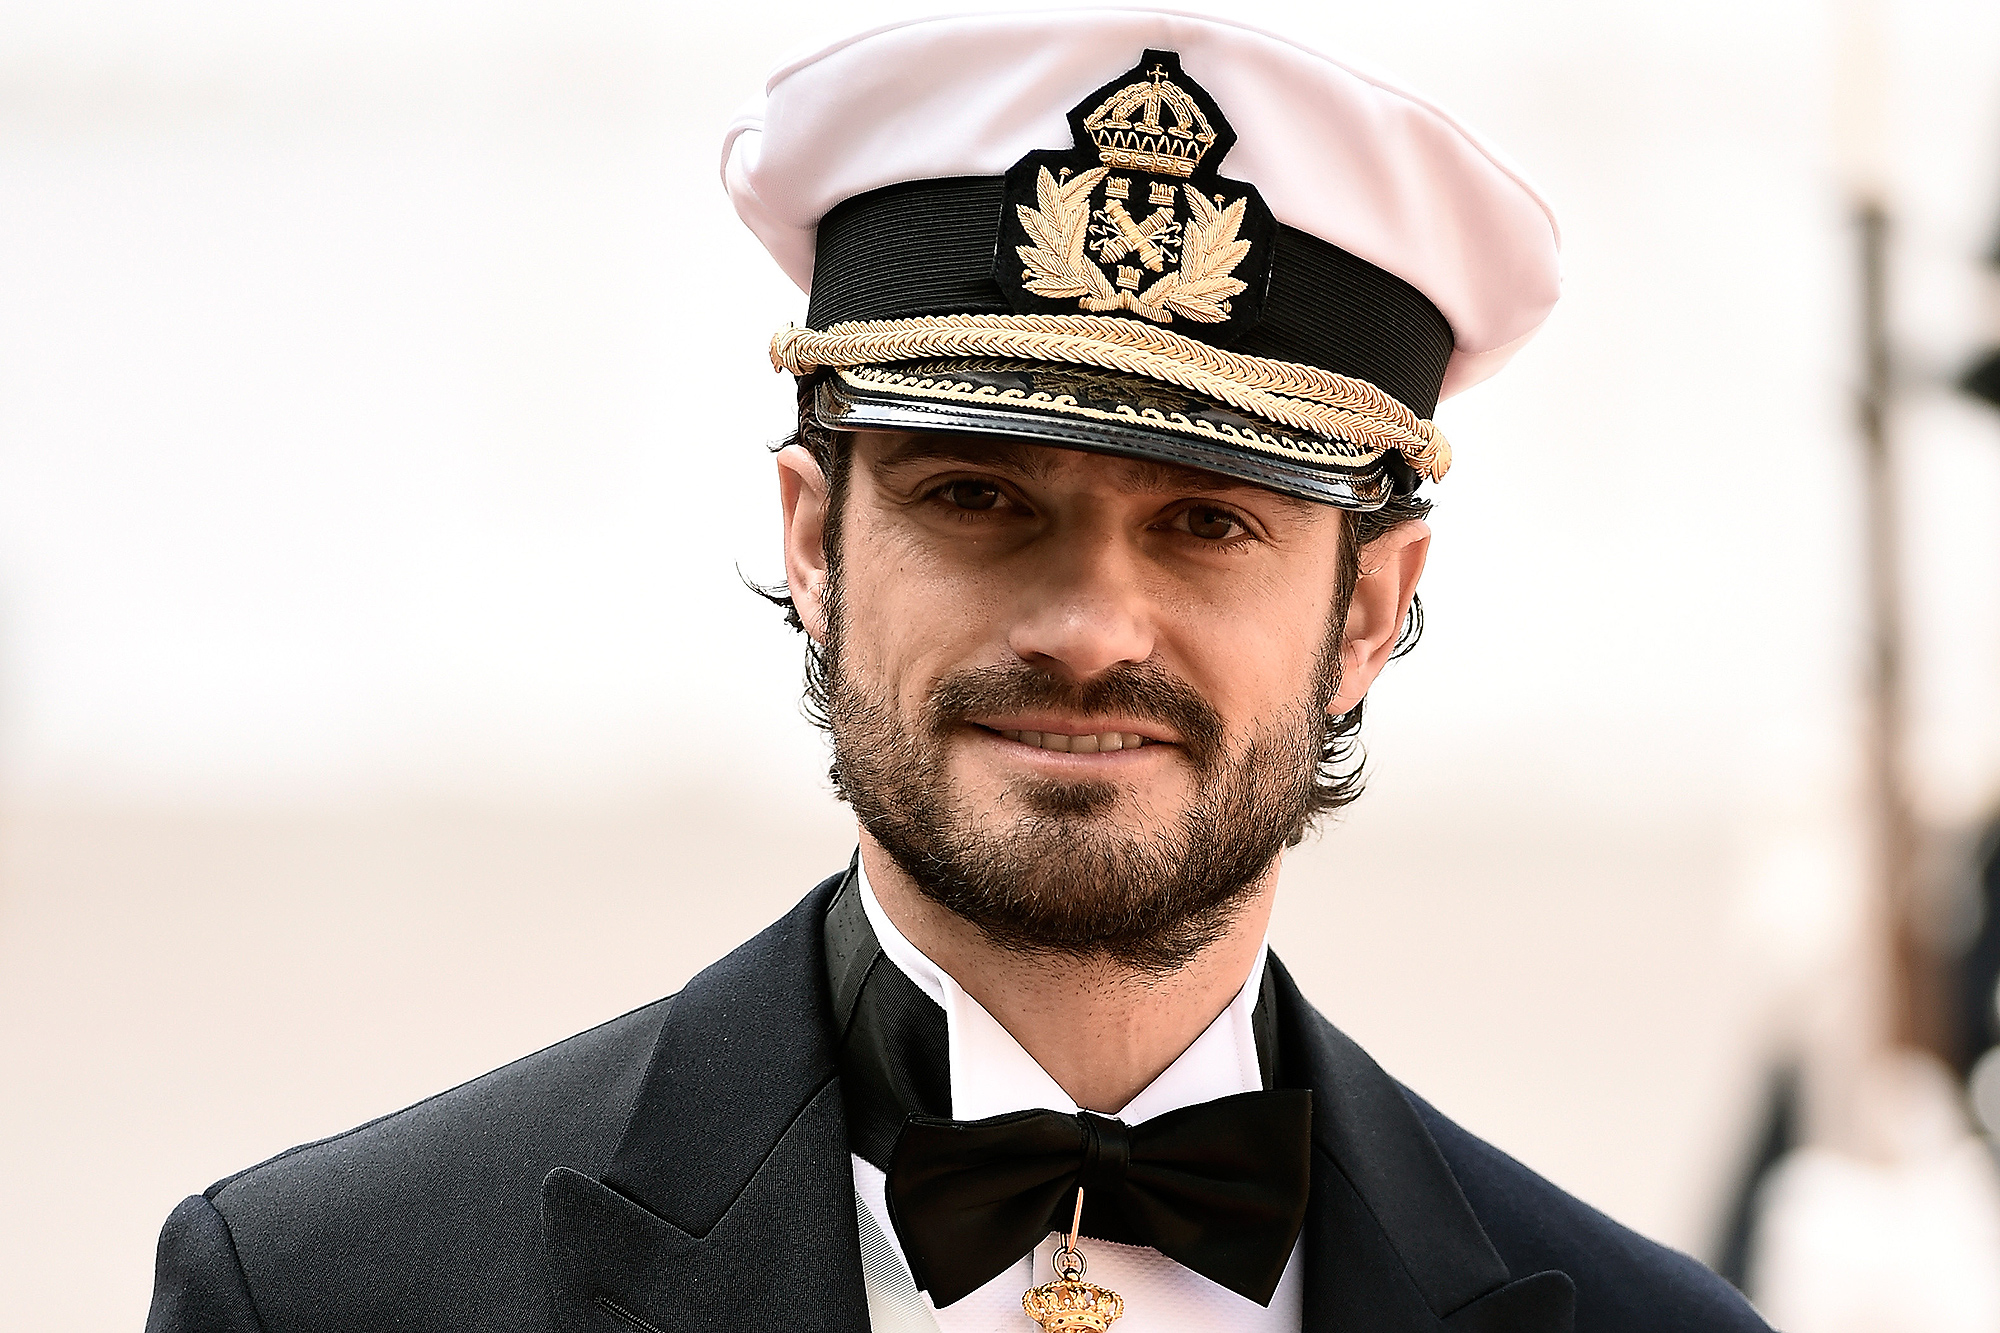 Carl Philip